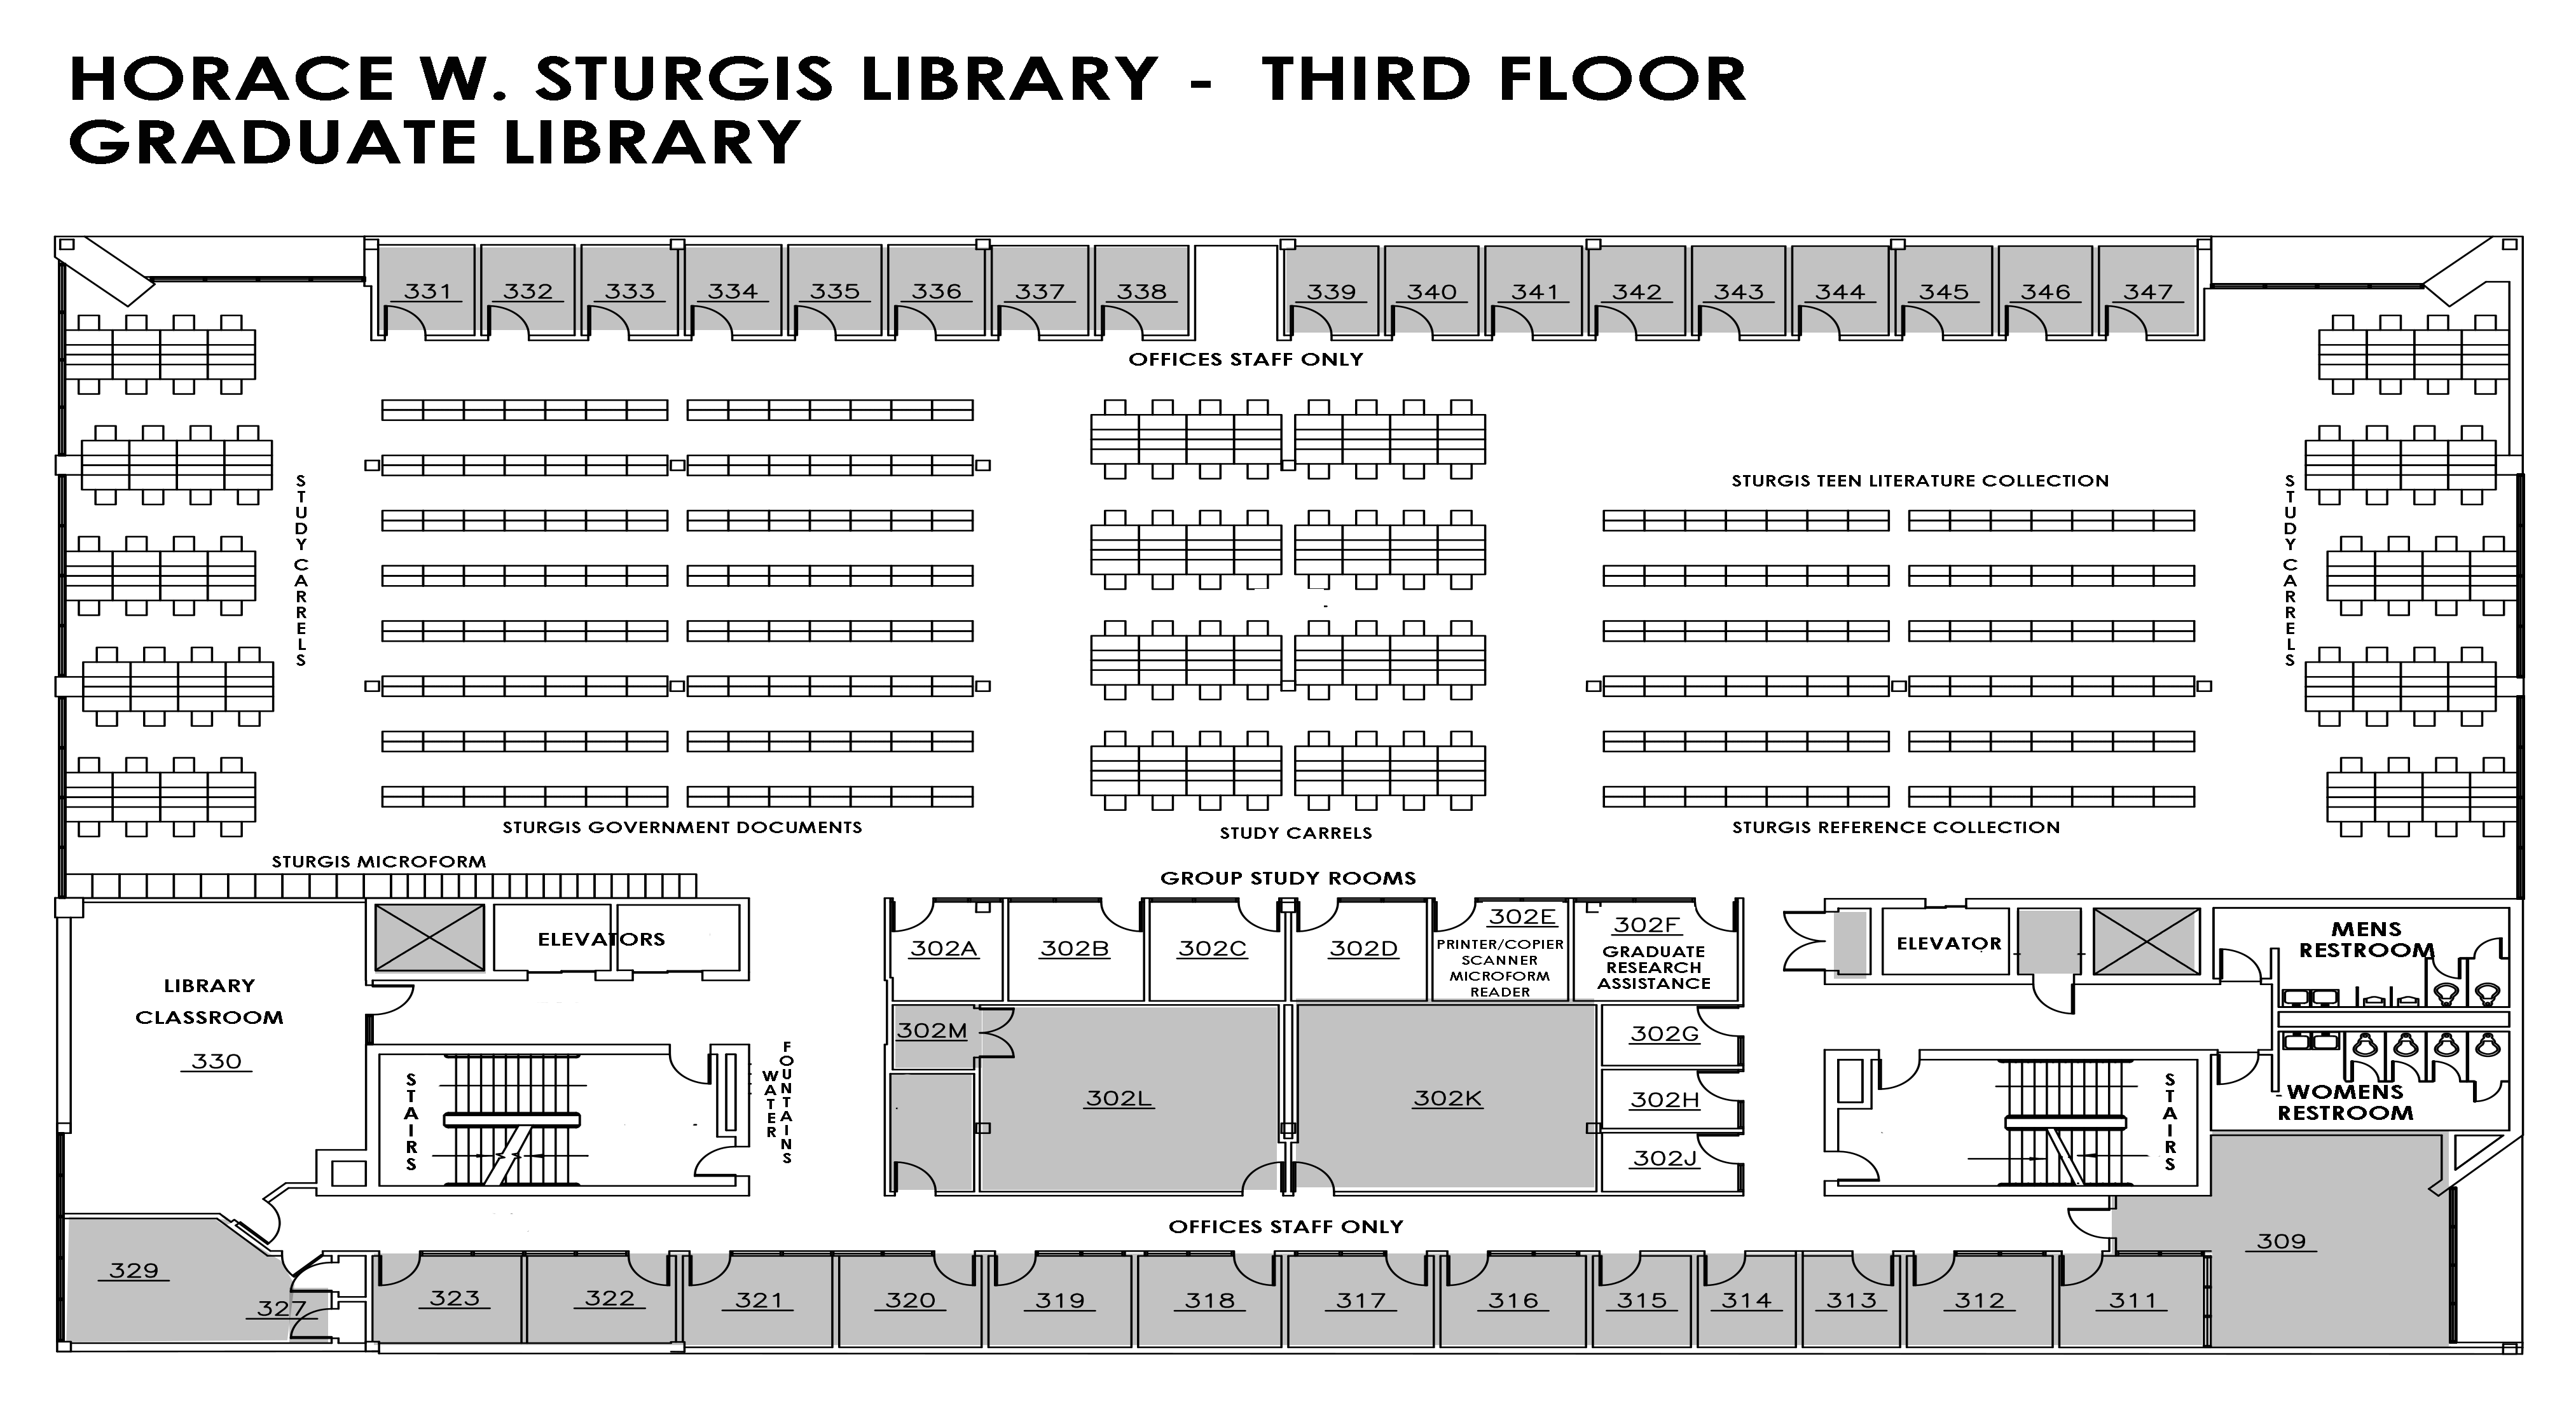 Sturgis Library third floor